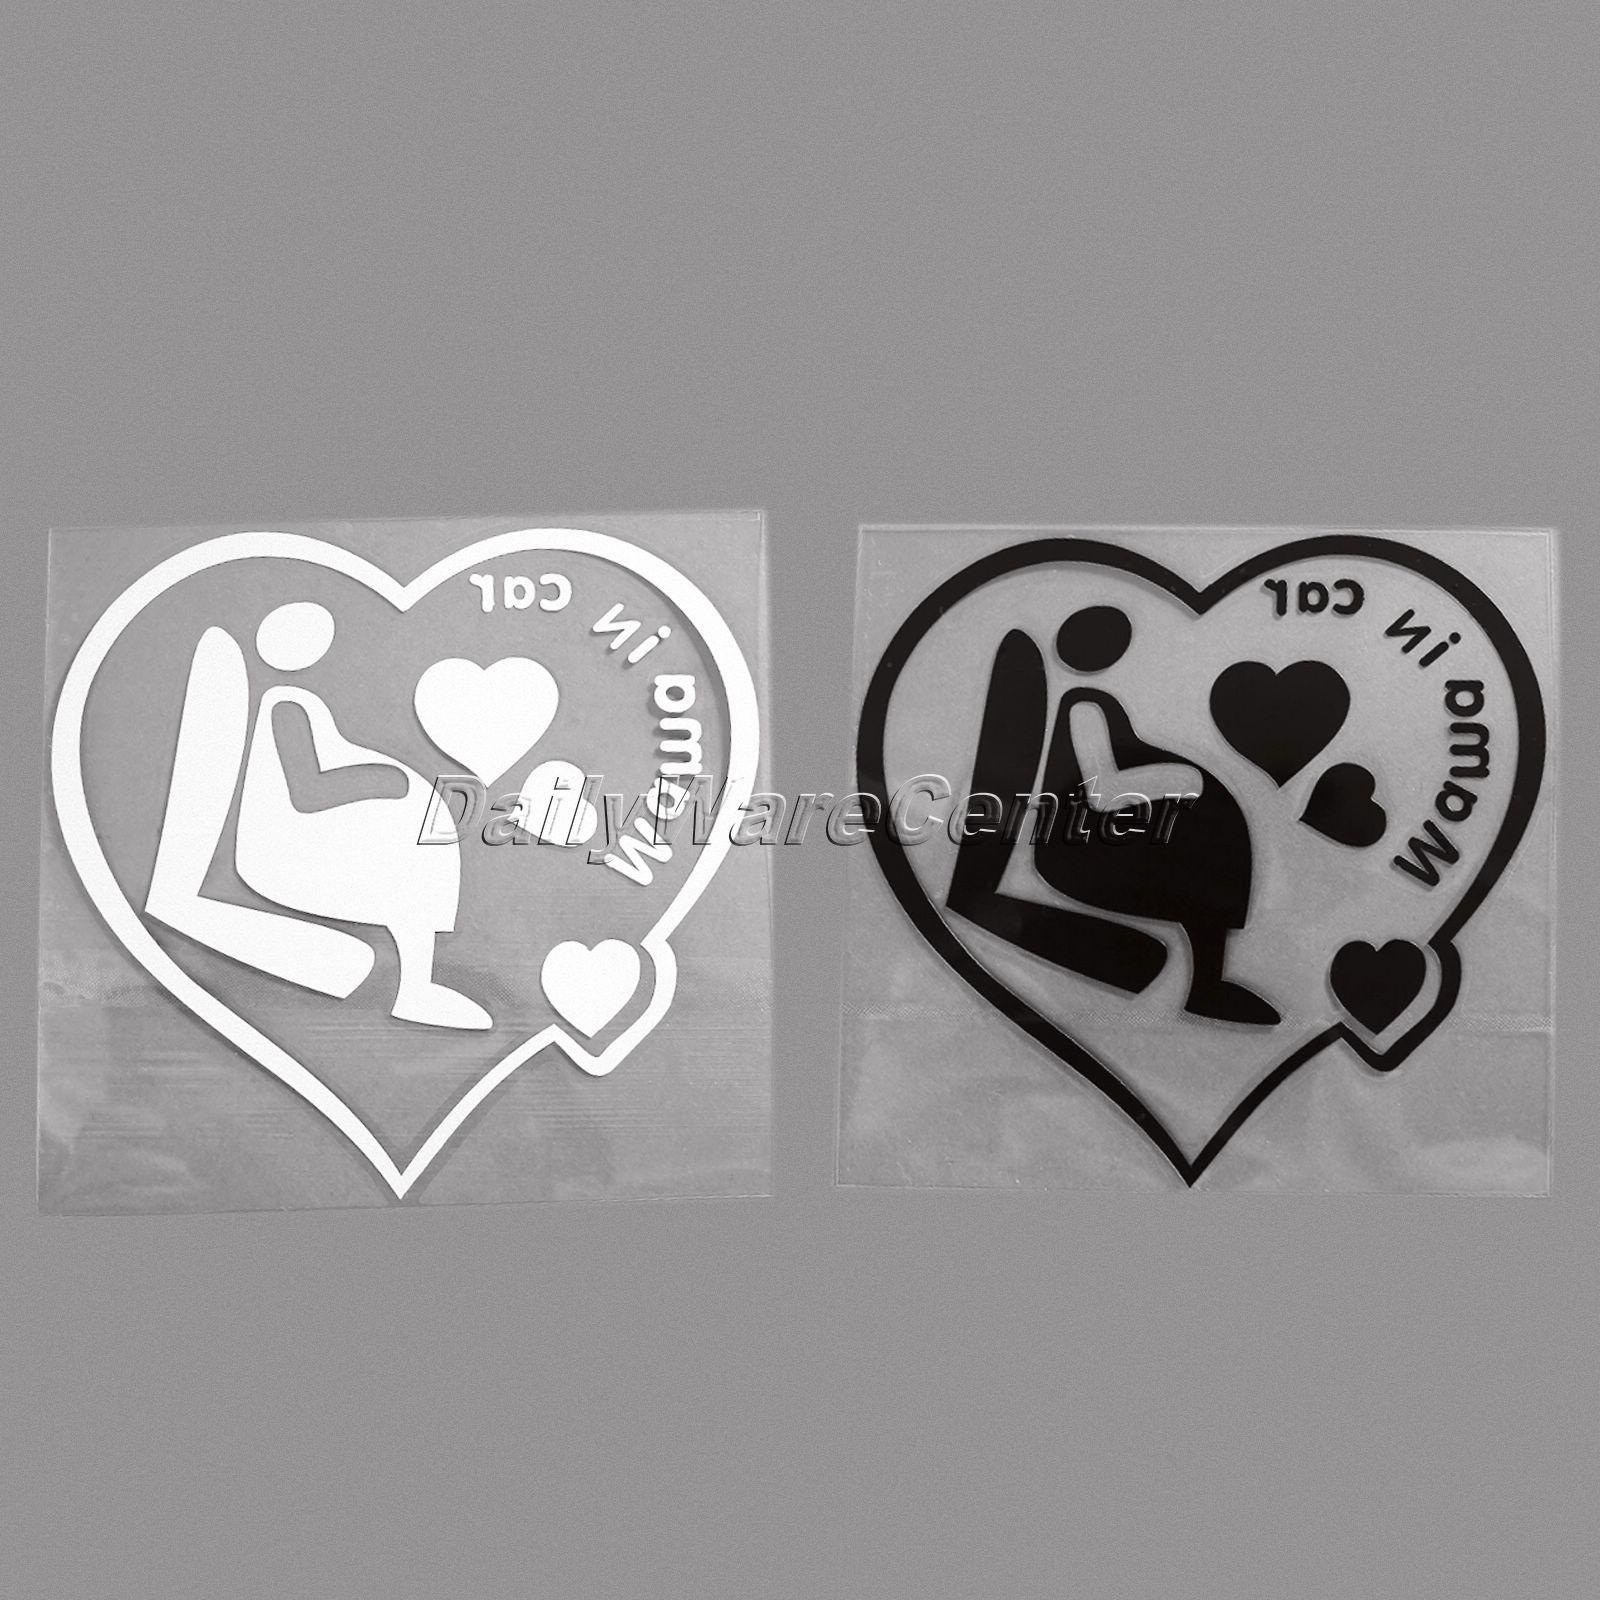 Design your car sticker - Mama In Car Pregnant Women Funny Car Sticker Vinyl Safety Warn Styling Reflective Decal For Car Rear Windshield Stickers On Cars